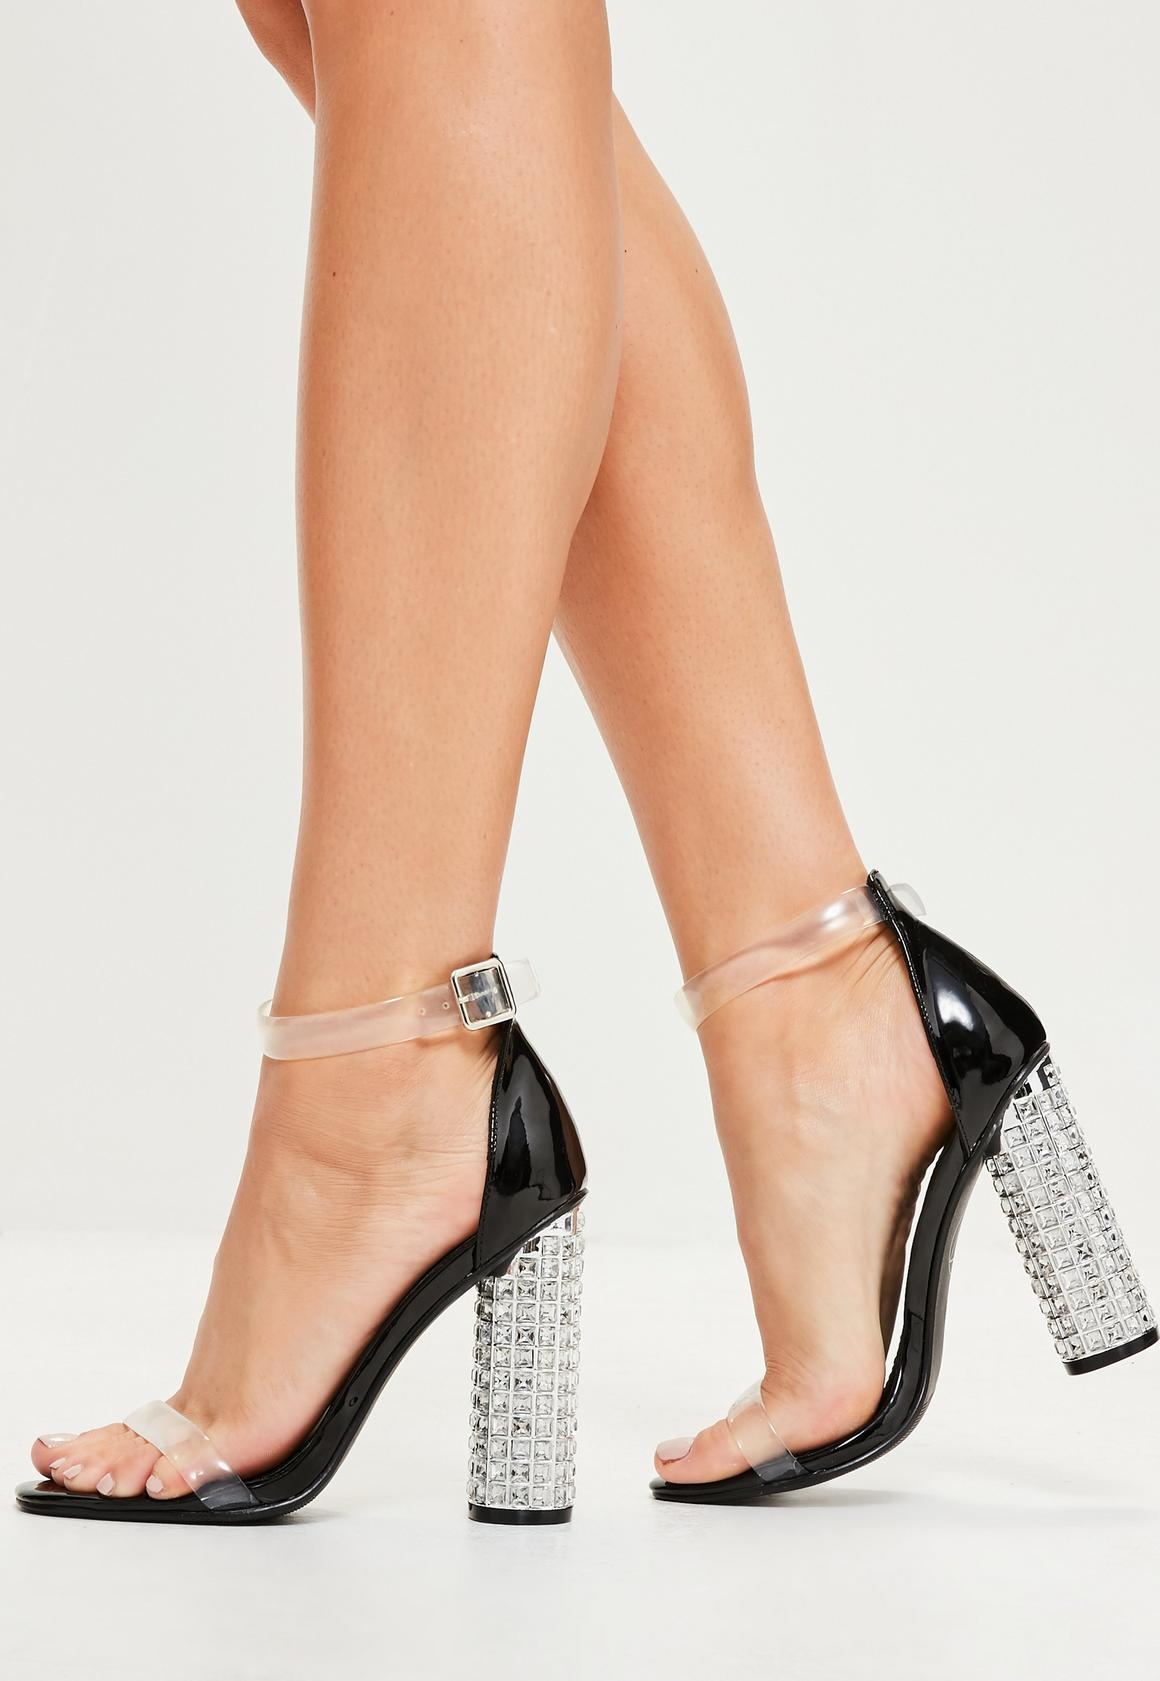 Black sandals missguided - Black Rounded Strap Feature Block Heeled Sandals Black Rounded Strap Feature Block Heeled Sandals